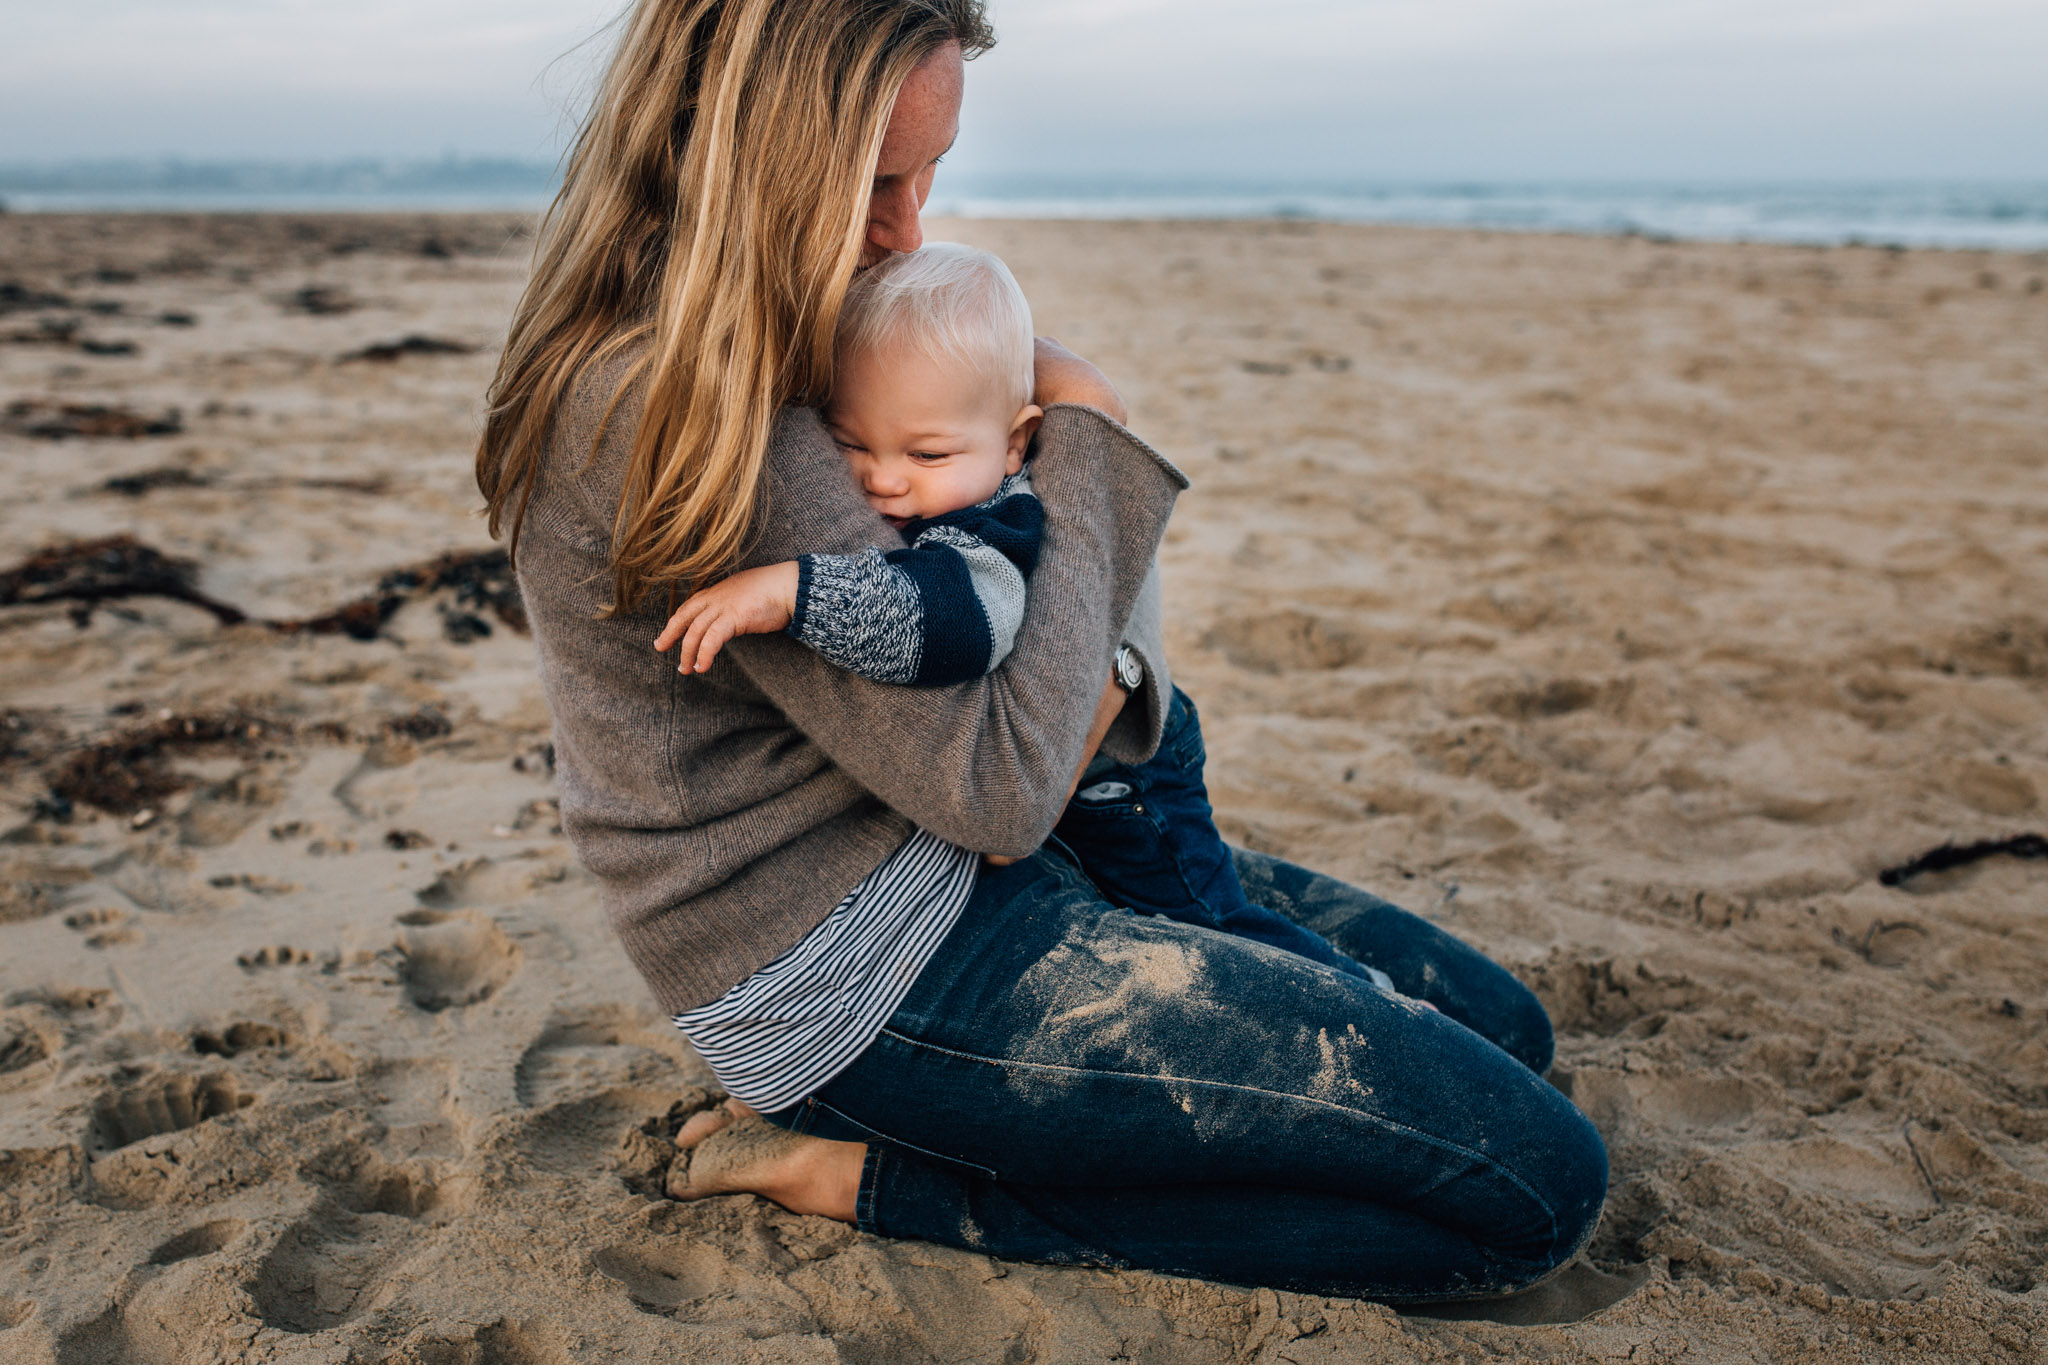 mother-and-son-hugging-on-sand (1 of 1).jpg